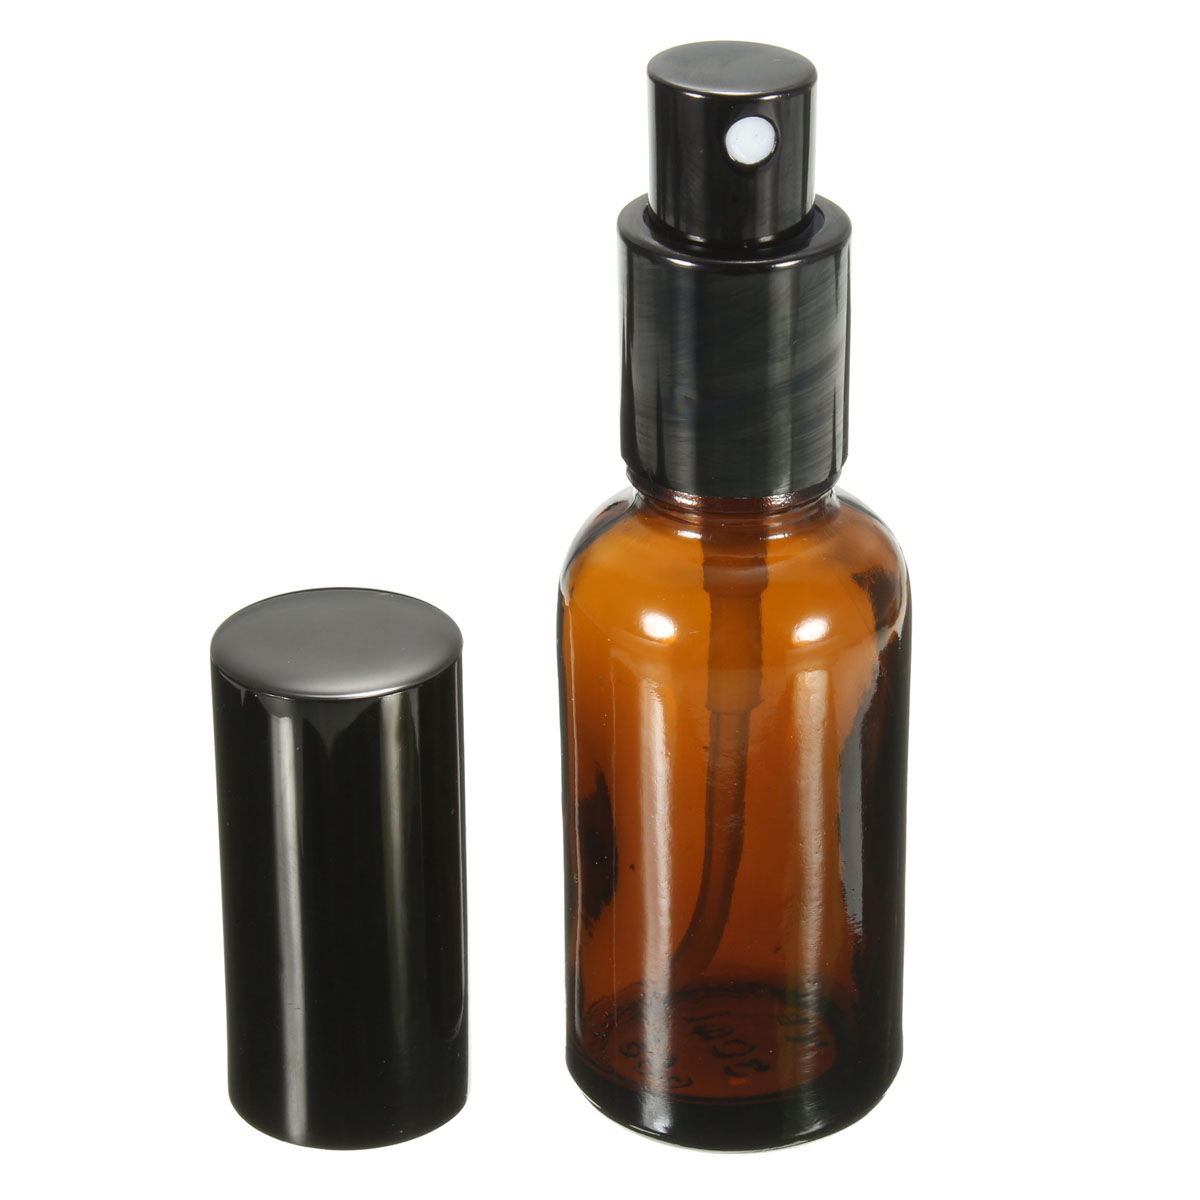 Transfer your Pine Essential Oil into the dark colored bottle